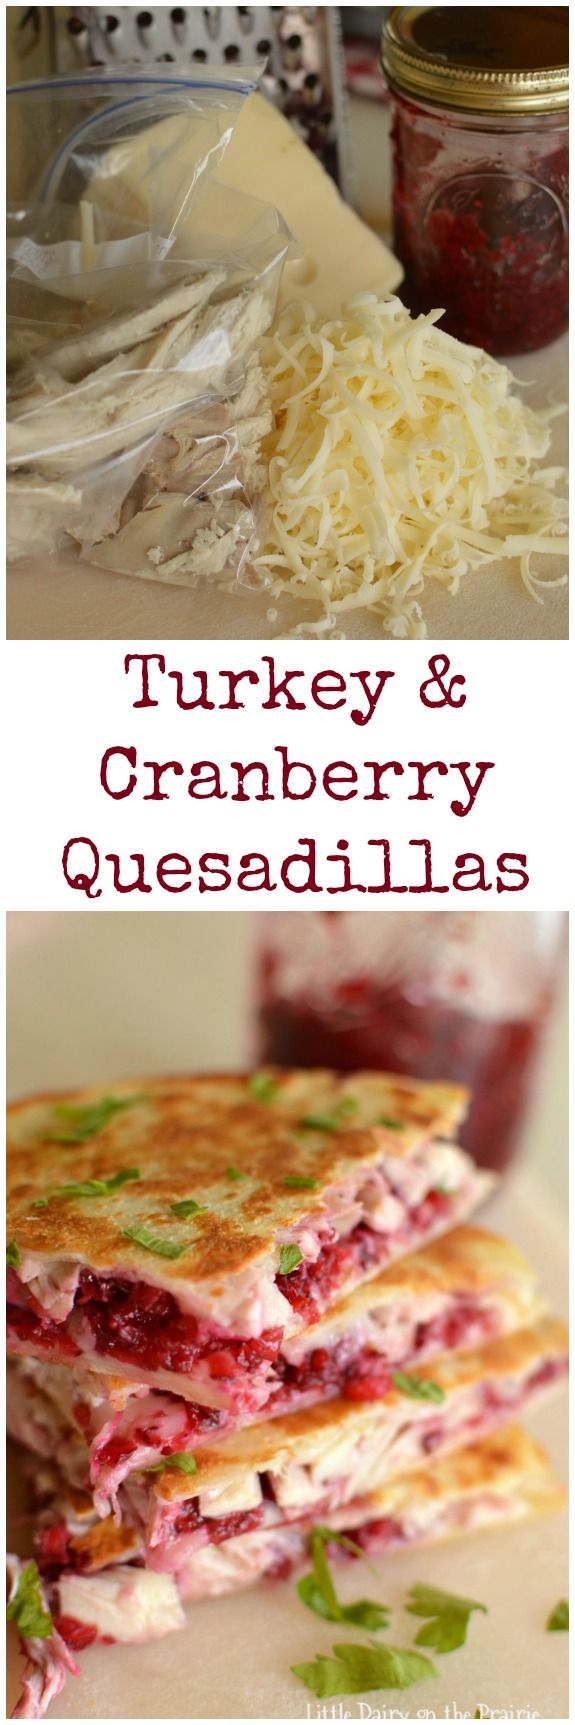 Turkey and Cranberry Quesadillas are quick and easy way to use up leftover turkey. Trust me, no complaints about leftovers on this